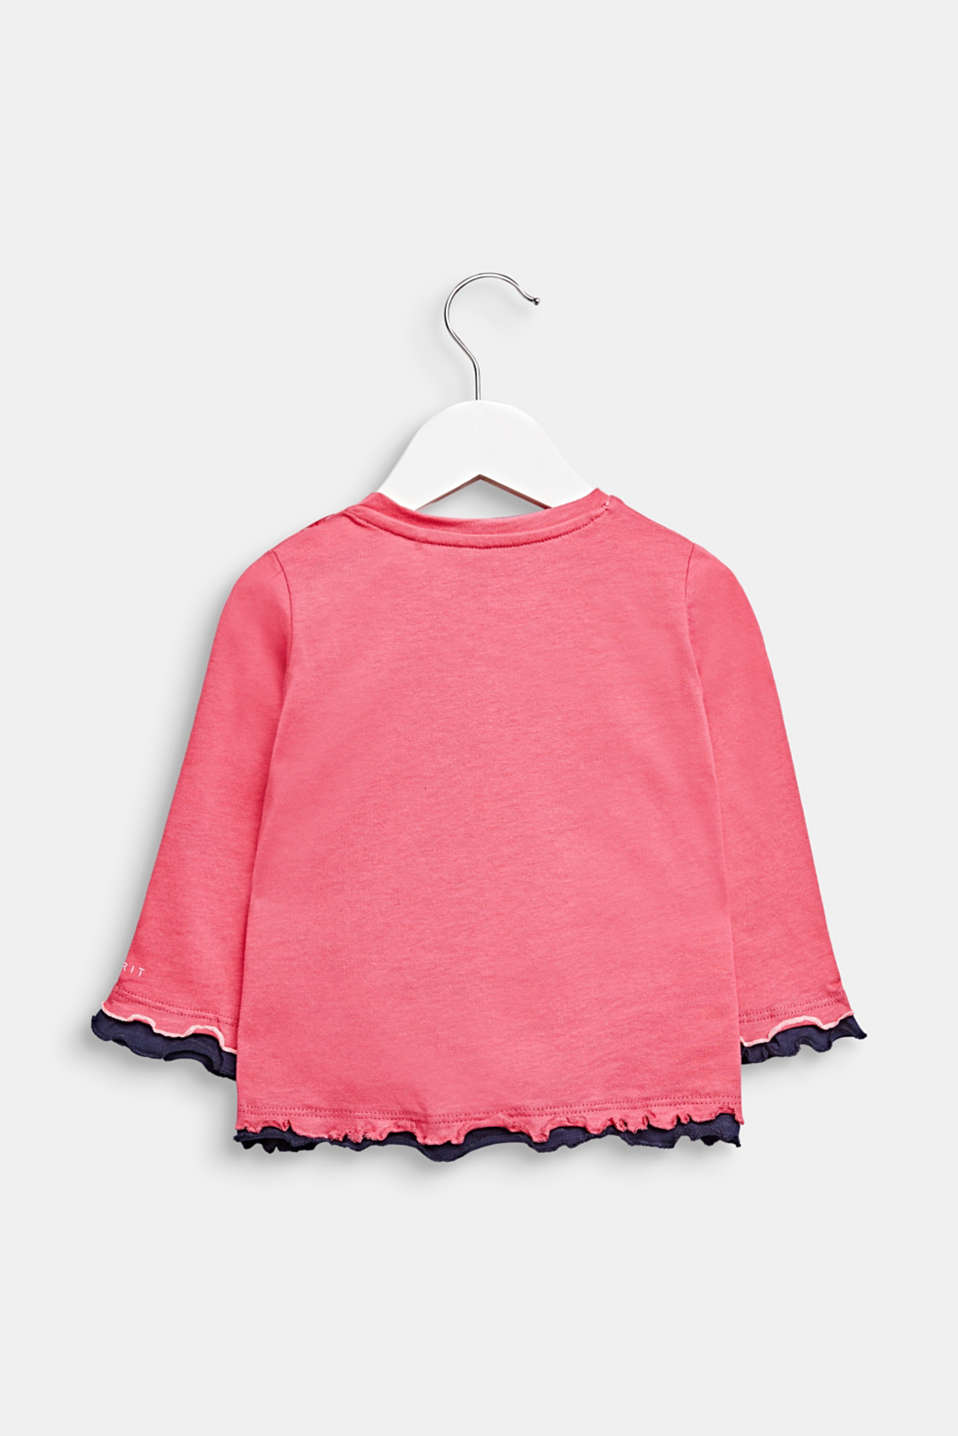 Frilled long sleeve top with a cat print, cotton, LCCANDY PINK, detail image number 1